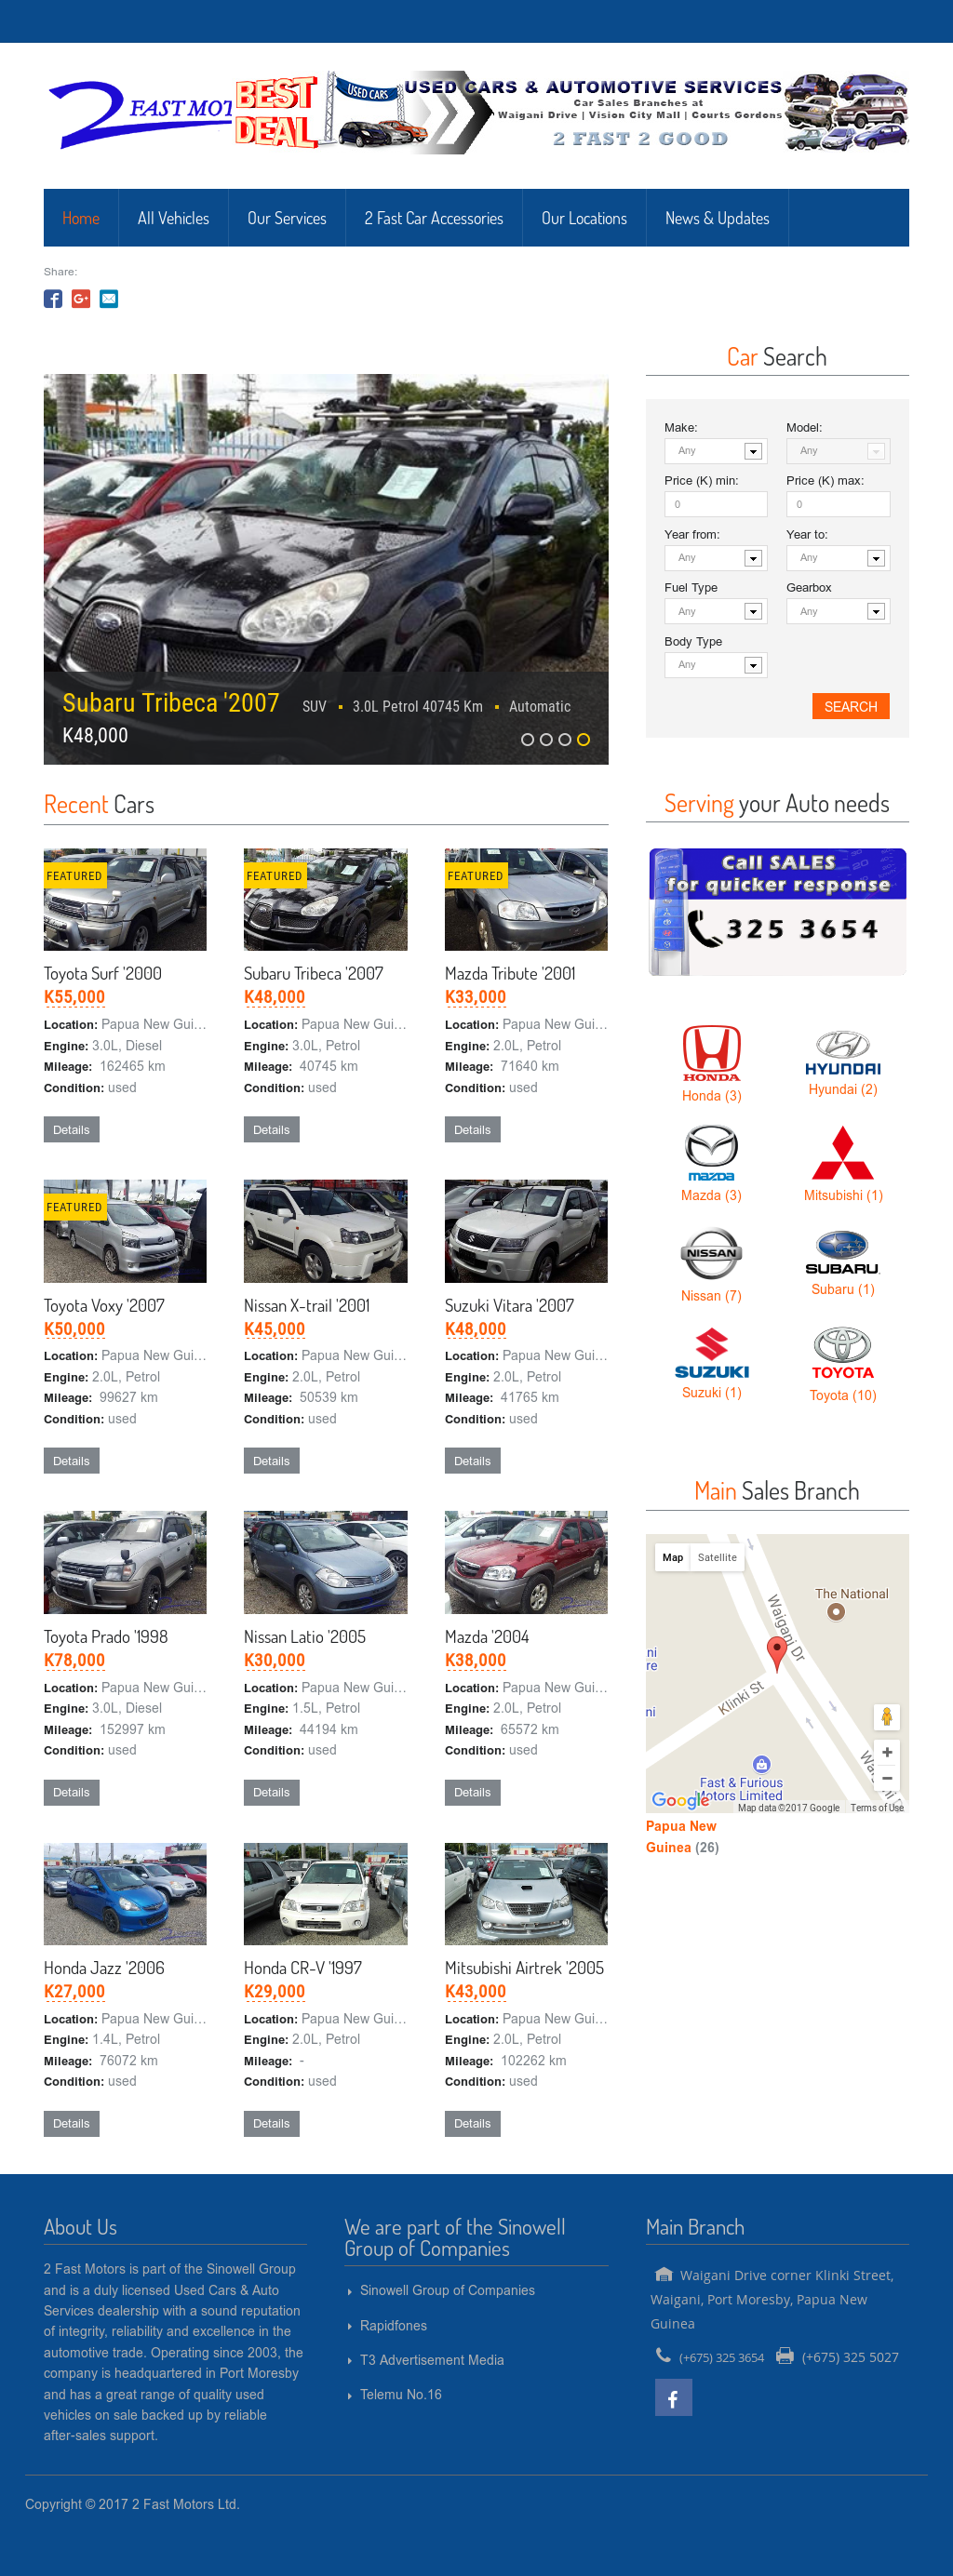 Fast Motors website history